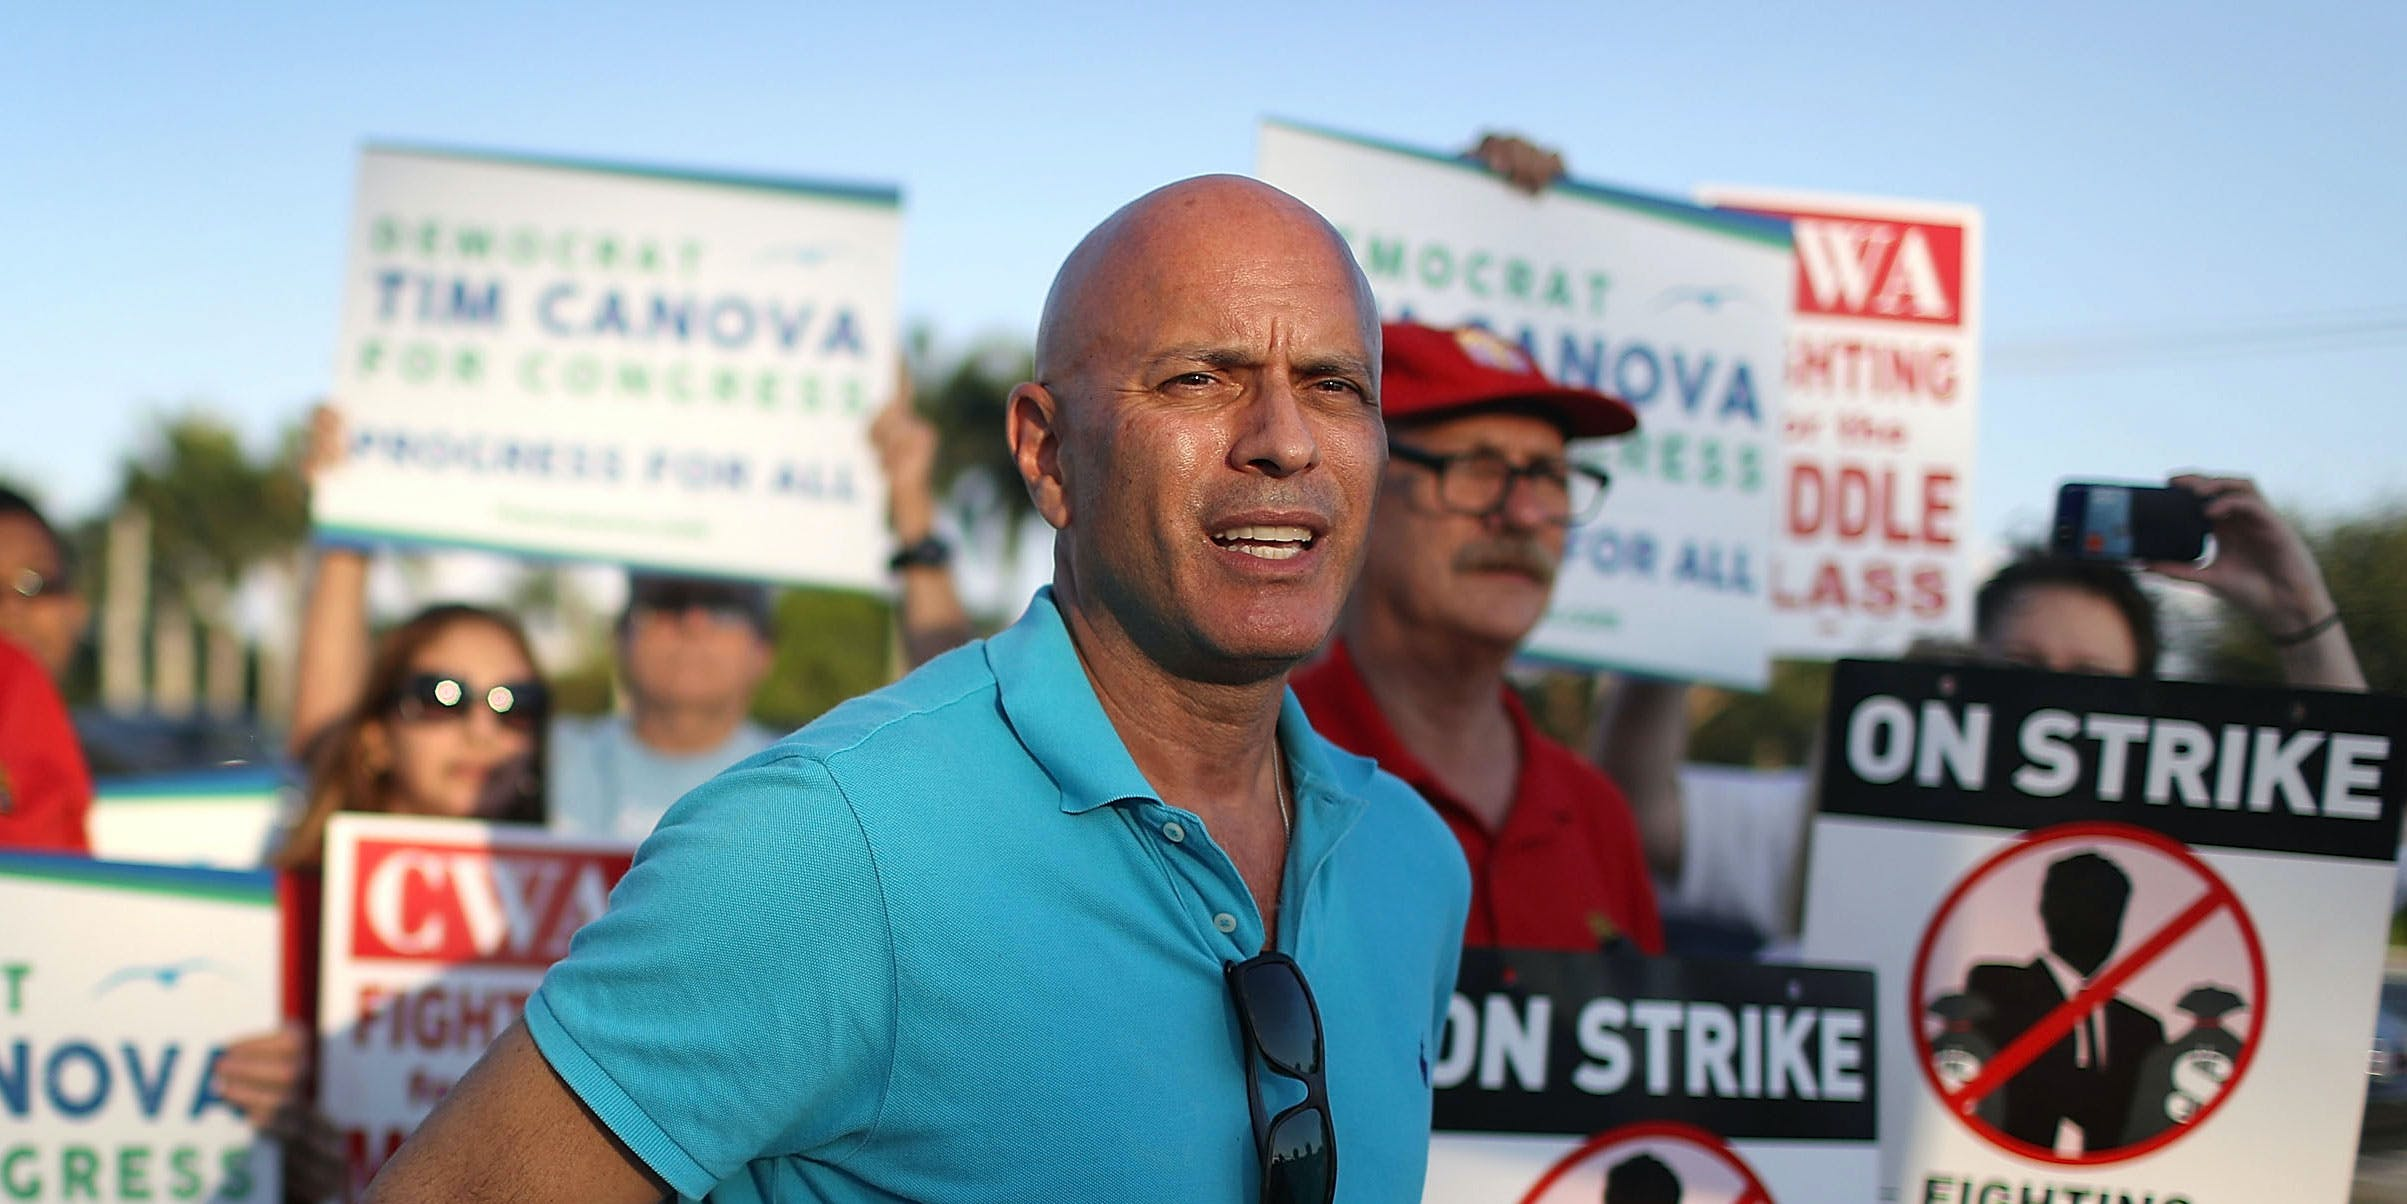 Tim Canova, Democrat Congressional Candidate for FL-23, joins CWA members, other South Florida union members and community activists at a Verizon protest on May 25, 2016 in Pembroke Pines, Florida. (Photo by Joe Raedle/Getty Images)